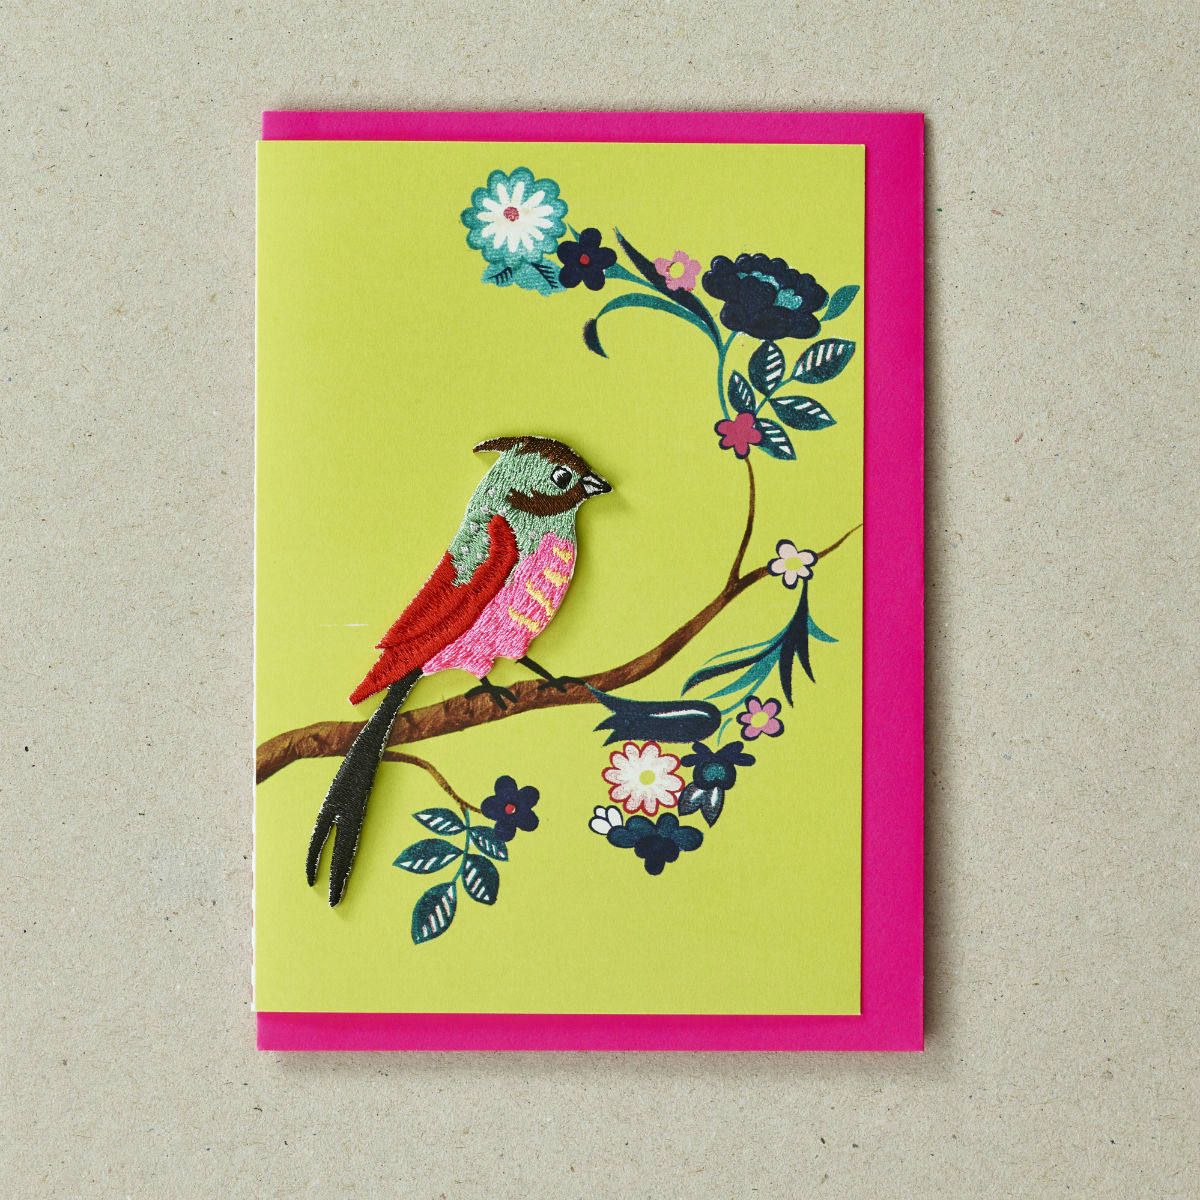 Embroidered Bird Blank Greeting Card by Petra Boase   Restoration Yard